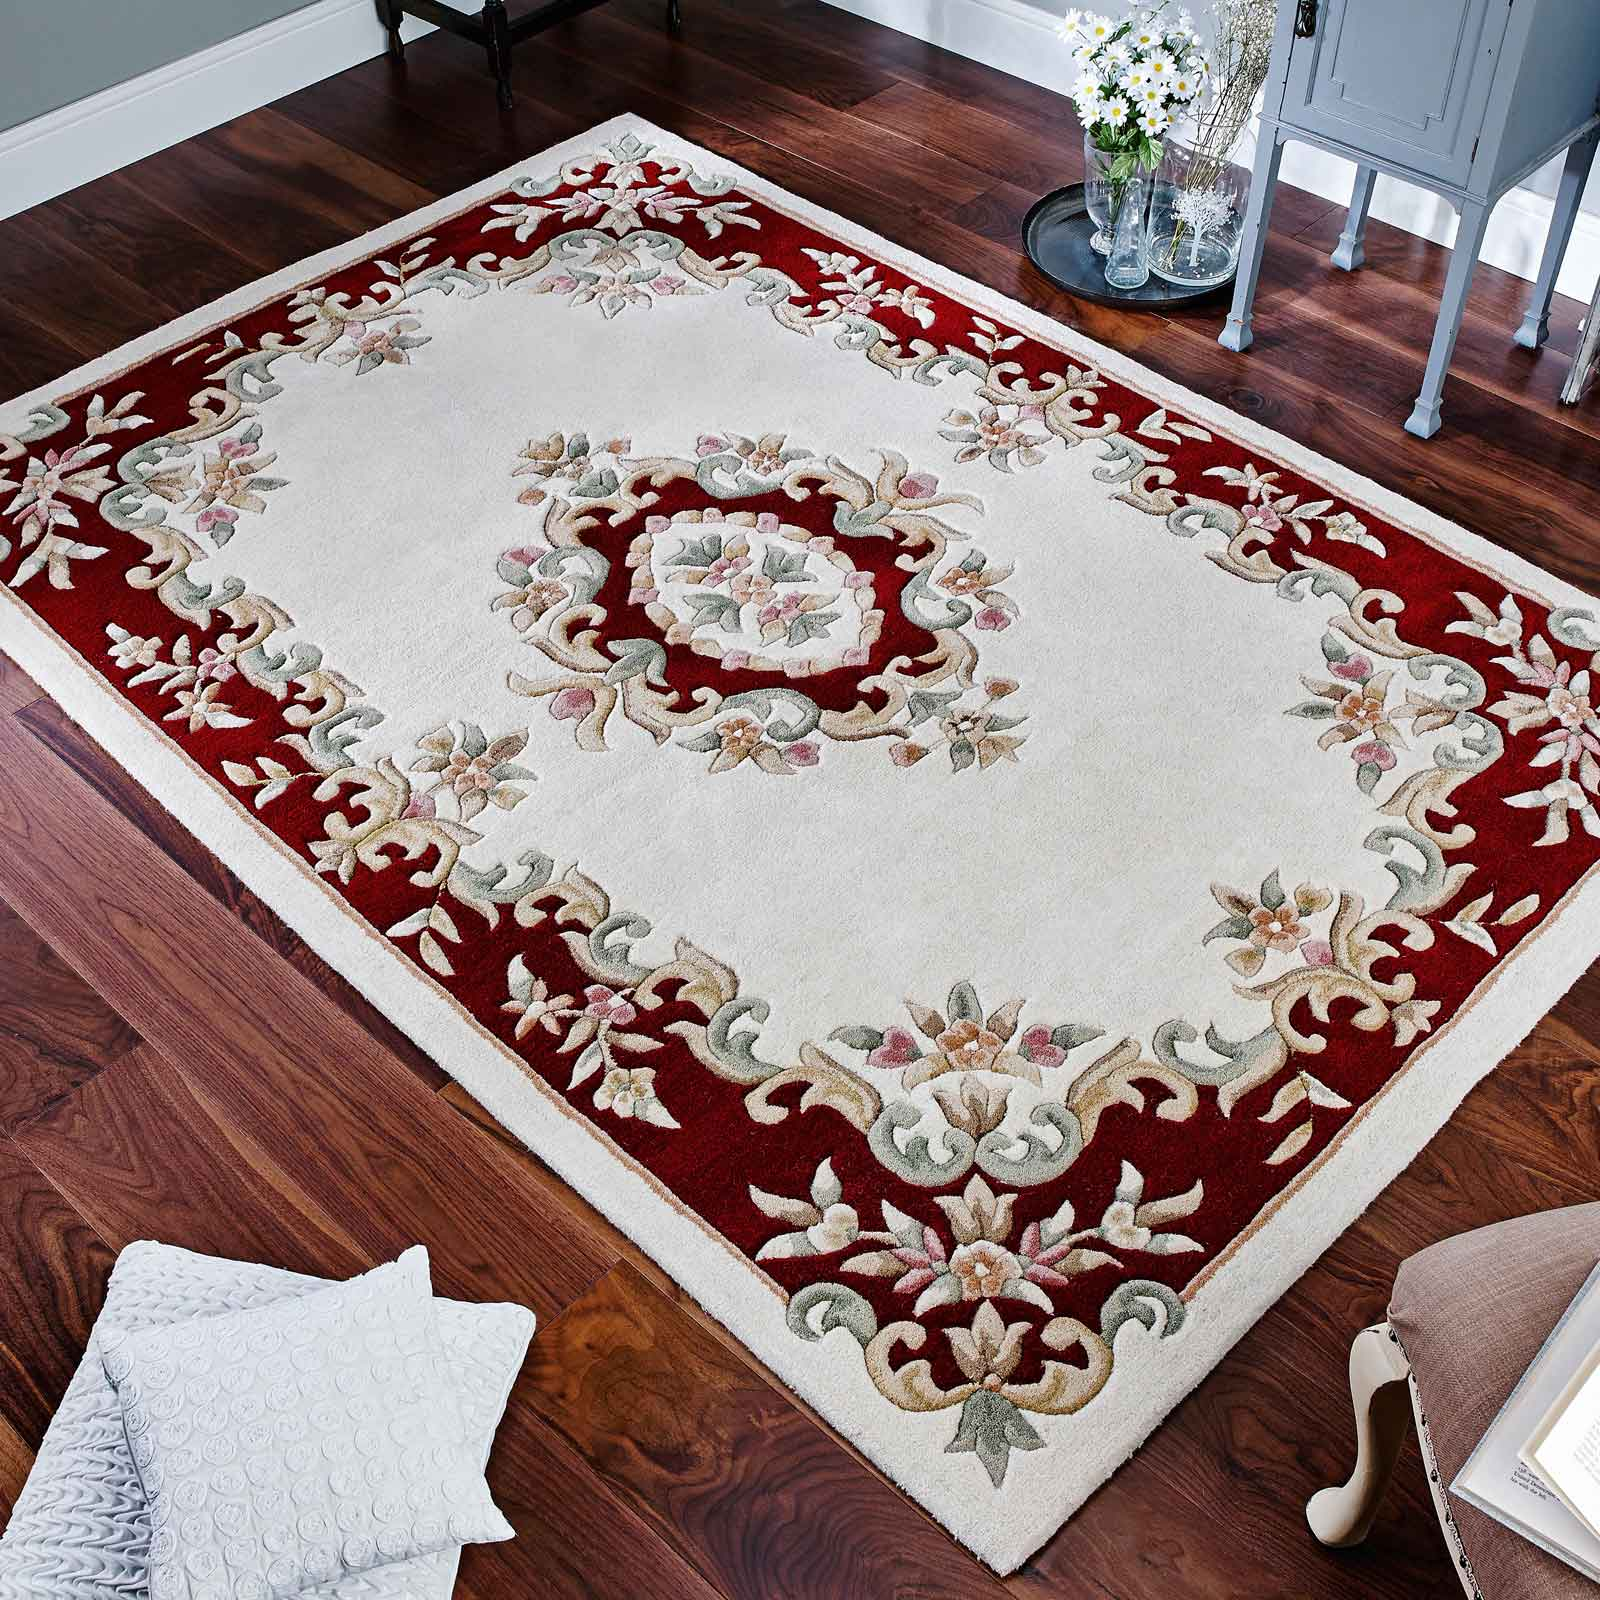 Aubusson Rugs Macys: Royal Aubusson Wool Rugs In Cream Red